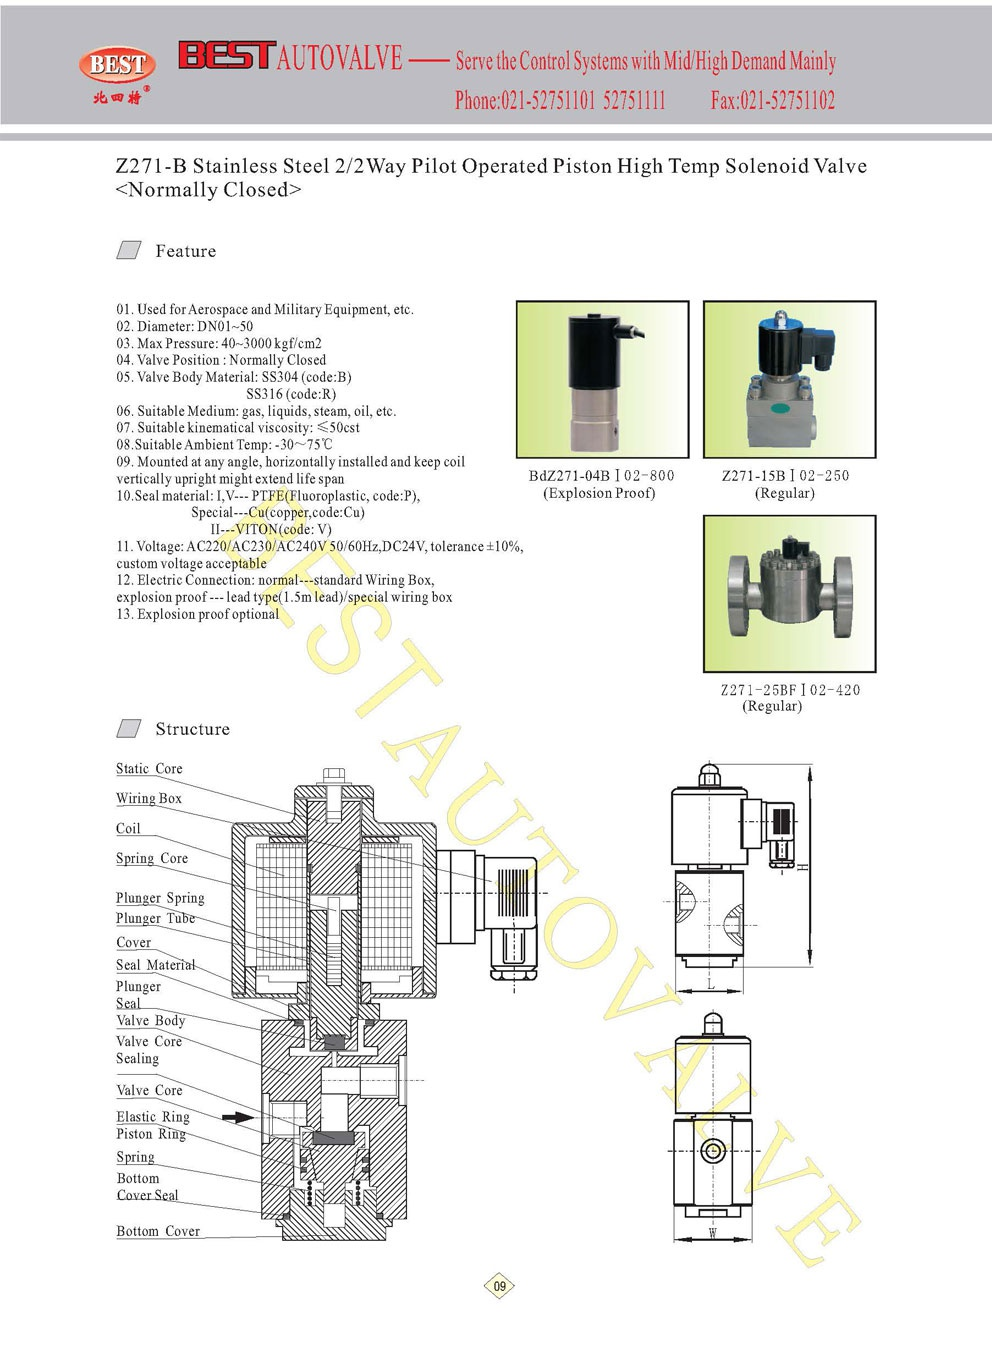 medium resolution of electric connection normal standard wiring box explosion proof lead type 1 5m lead special wiring box 13 explosion proof optional